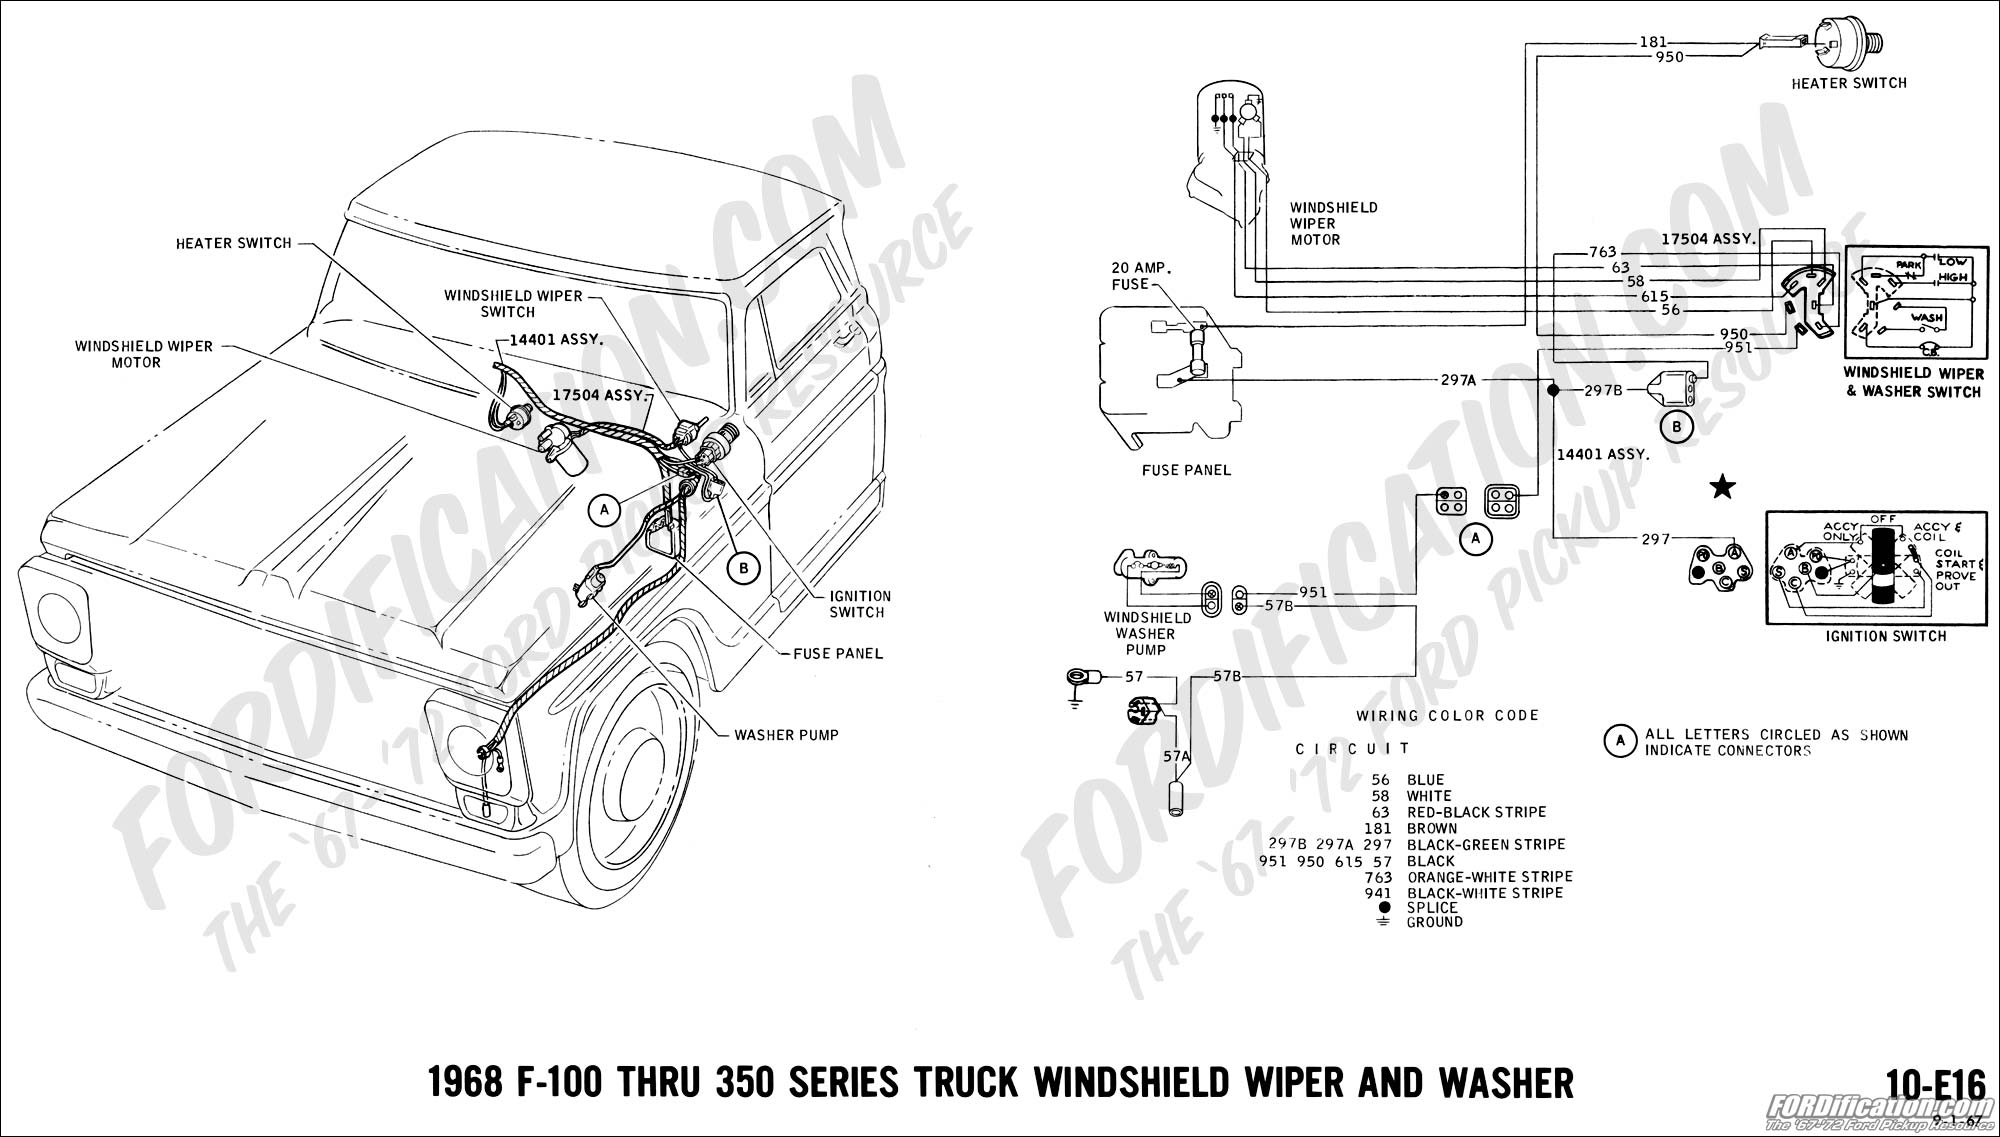 1968 f-100 thru f-350 windshield wiper and washer